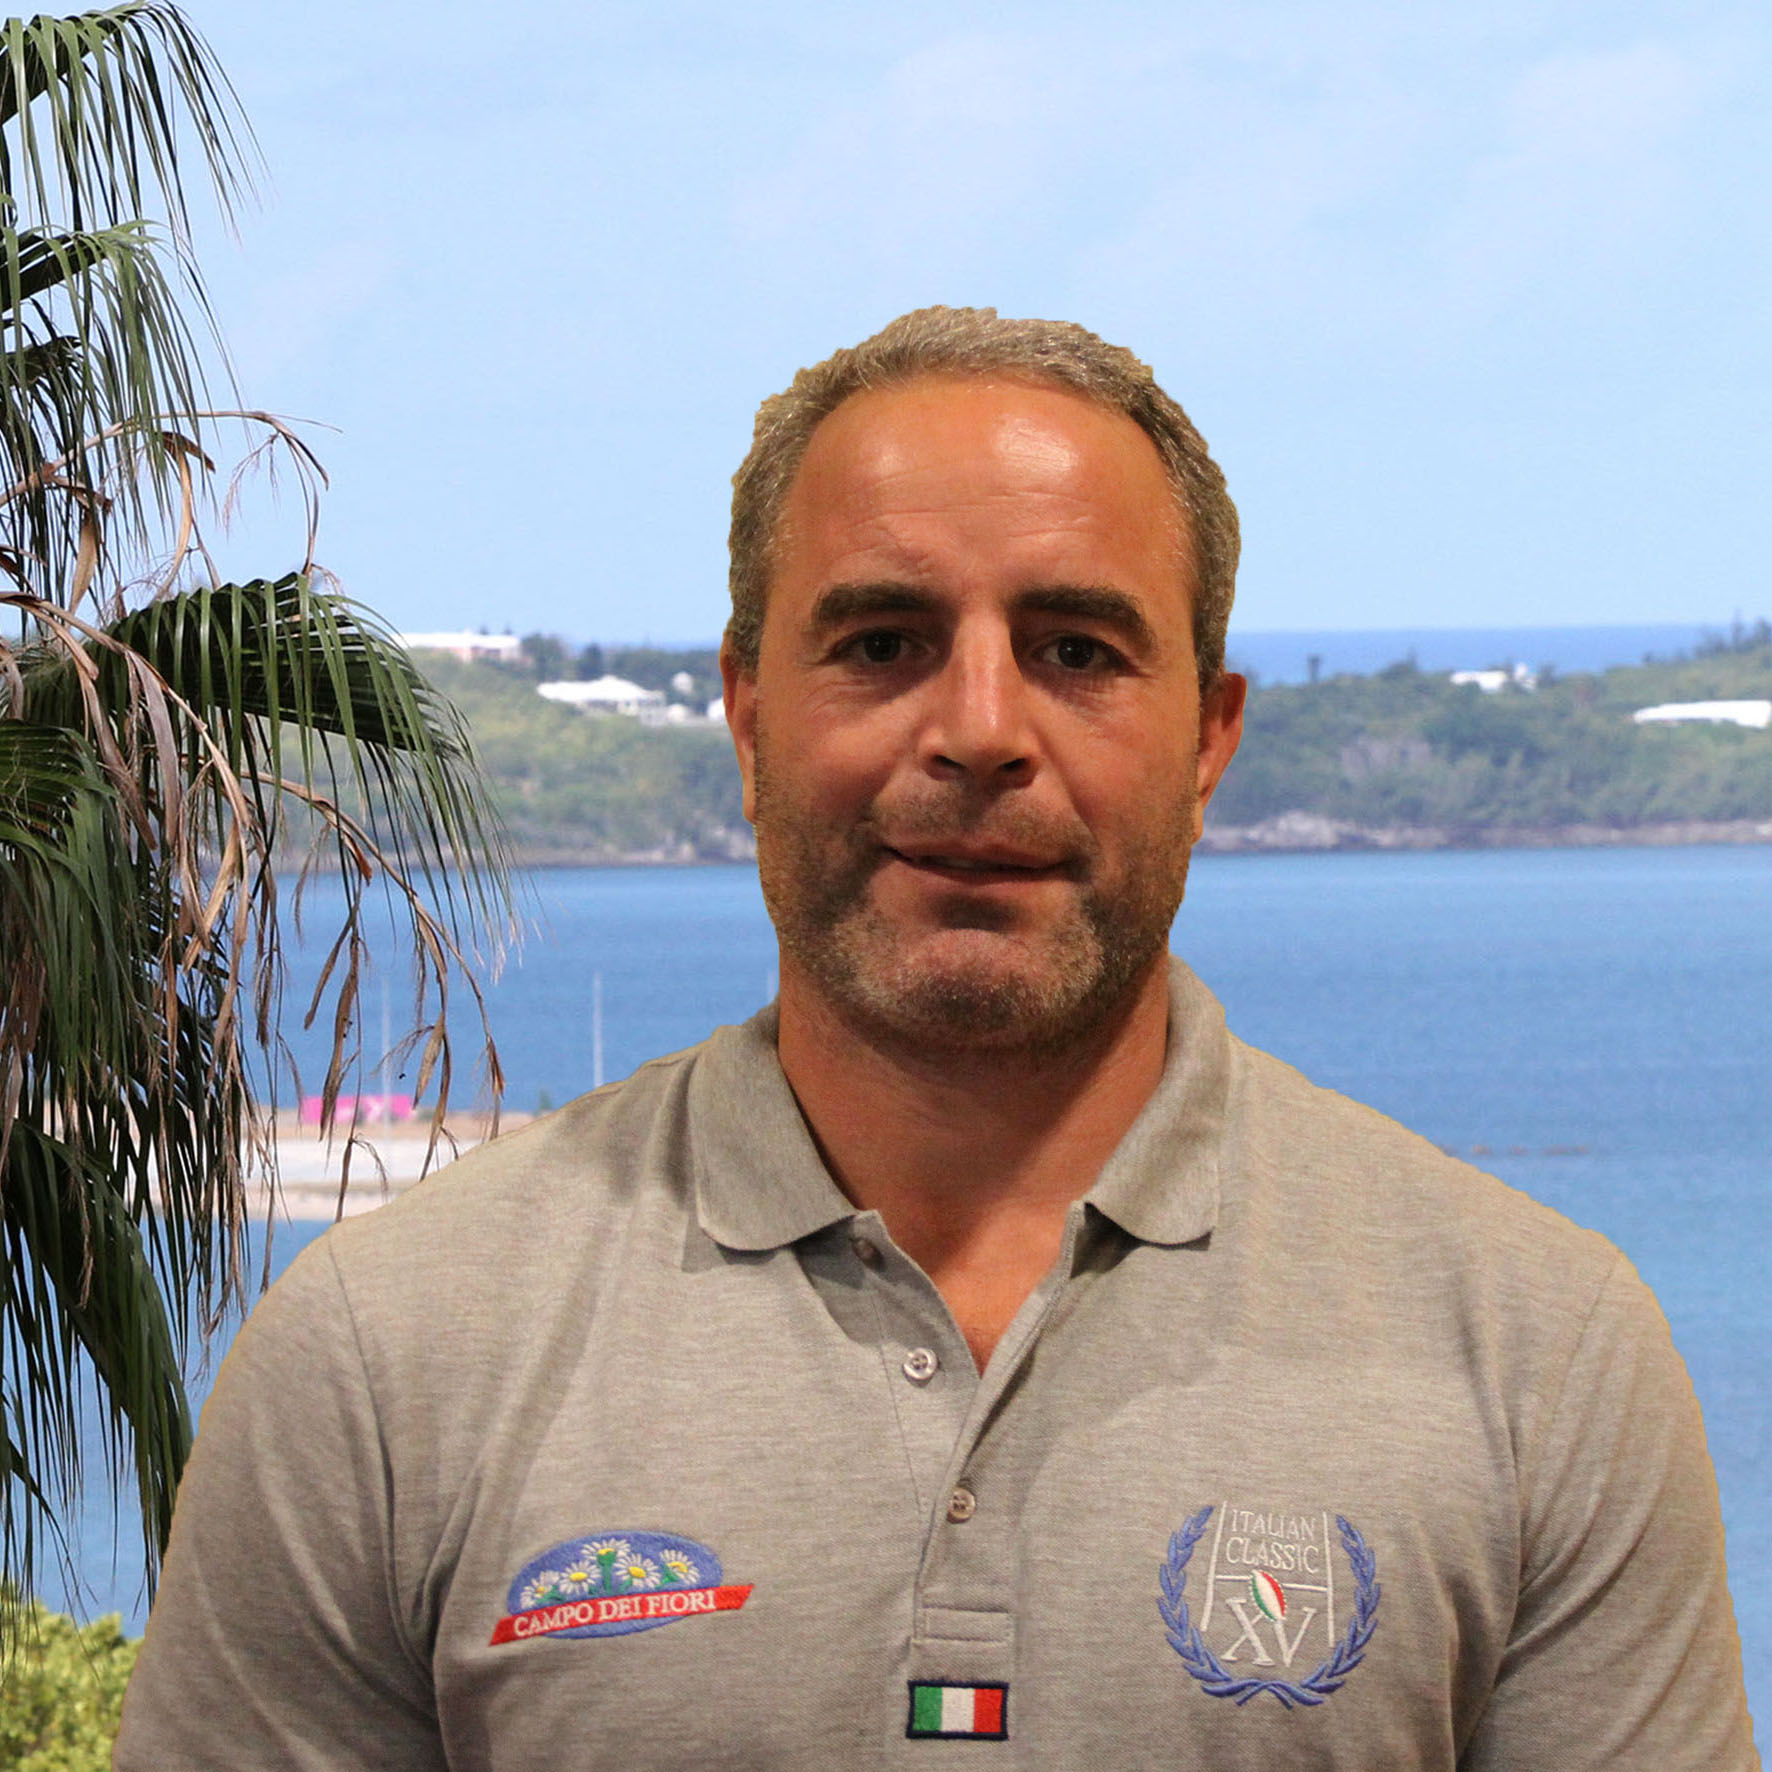 https://www.rugbyitalianclassicxv.com/wp-content/uploads/2019/04/WorldClassic2018_Bermuda_20181104_00_Damiani_ph_Turchetto.jpg